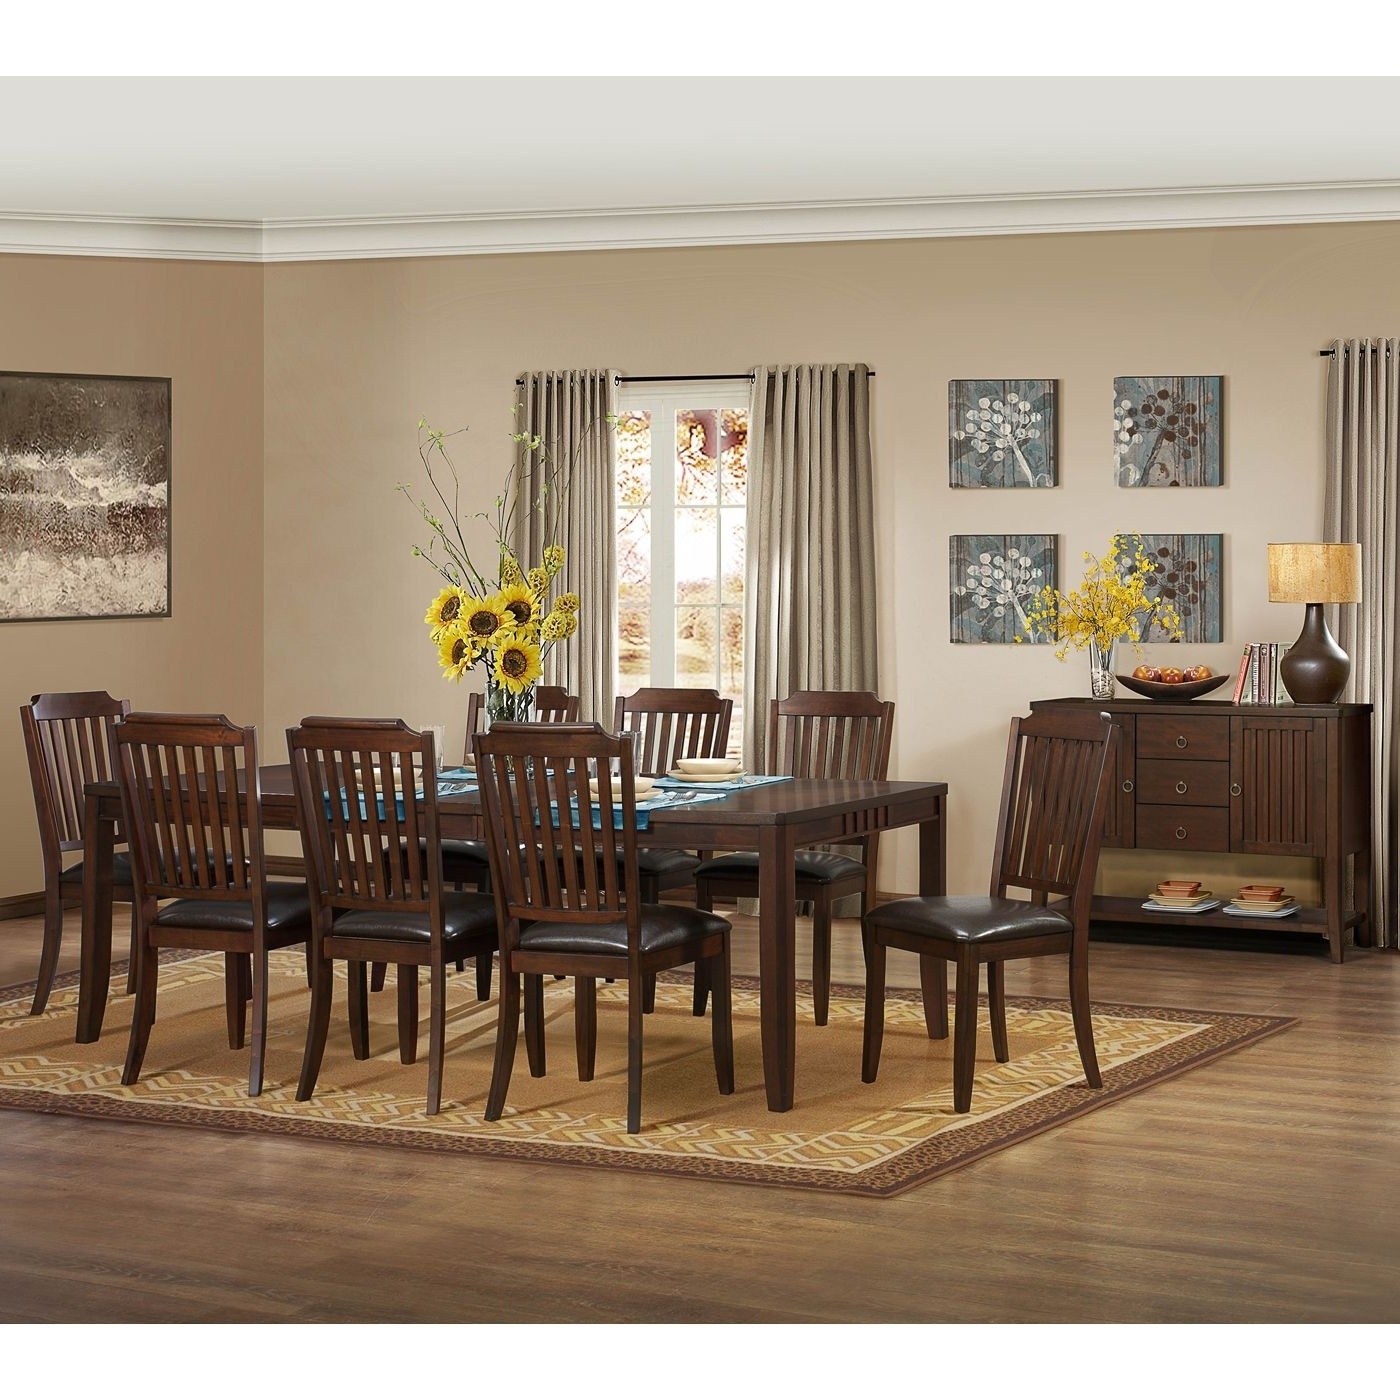 Latest Craftsman 7 Piece Rectangle Extension Dining Sets With Arm & Side Chairs Pertaining To Homelegance 5101 92 Dickens Dining Table (View 13 of 25)